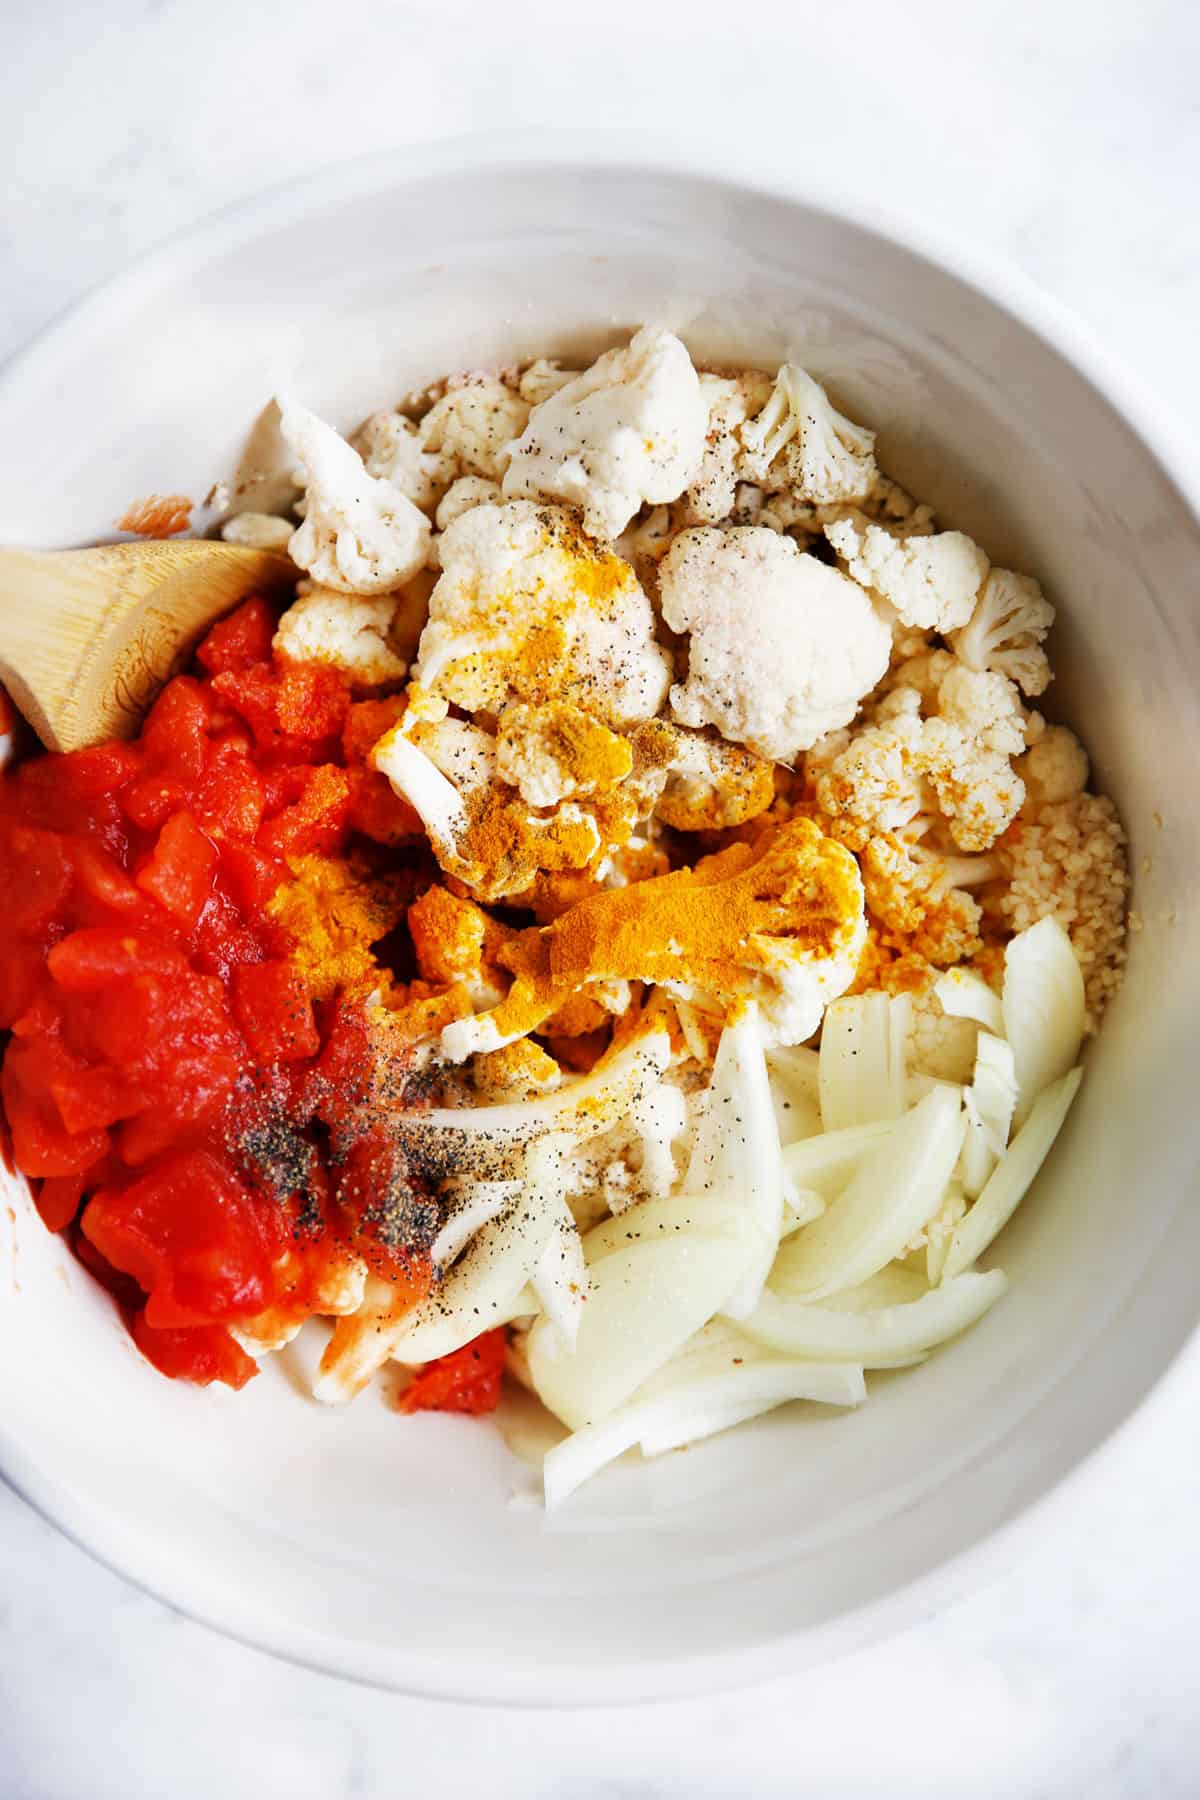 Ingredients for spiced cauliflower in a bowl.